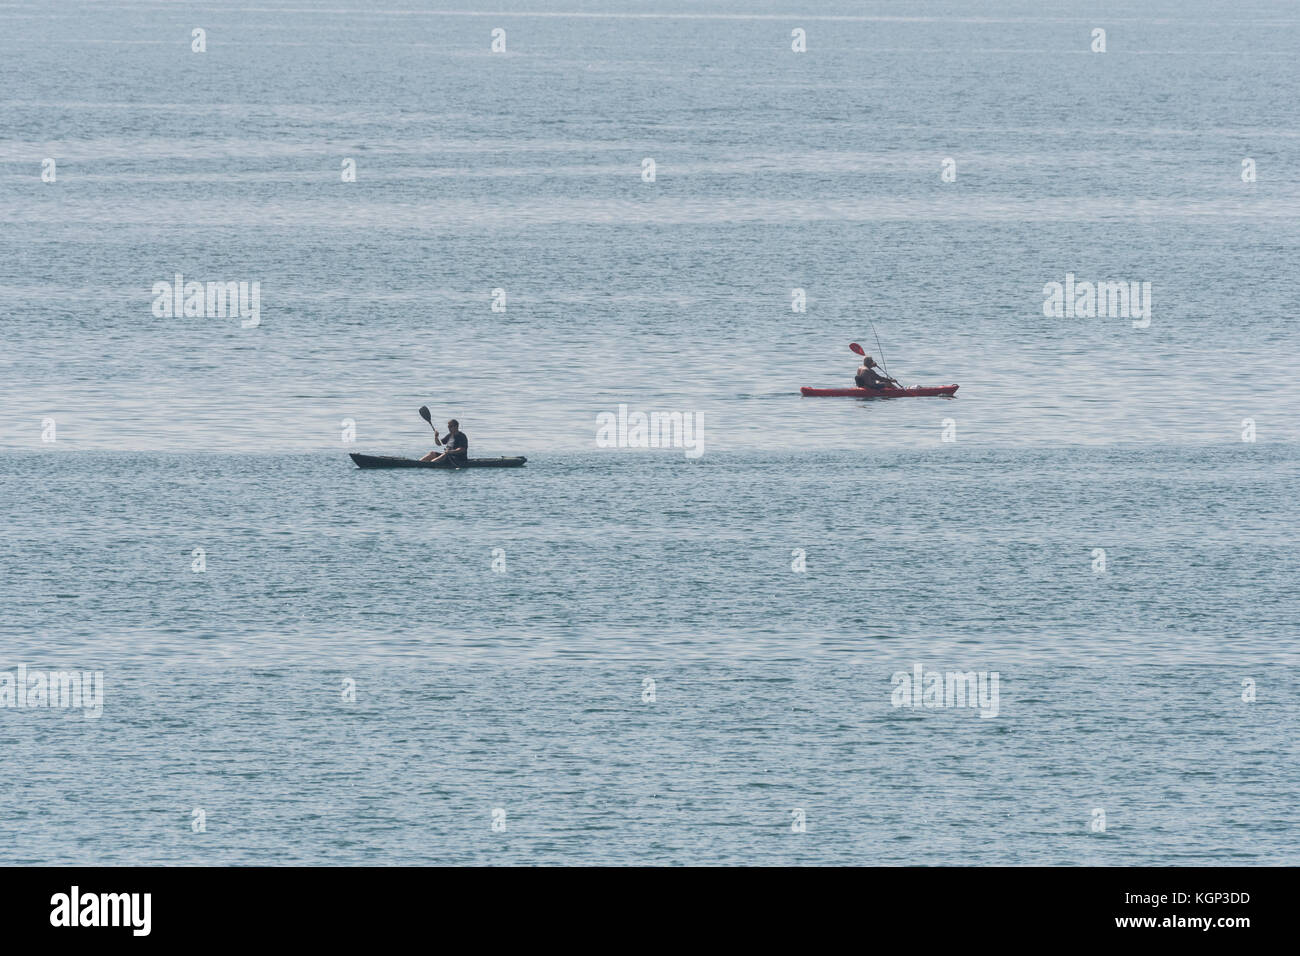 Two sea anglers paddling sea kayaks silhouetted against the water. Line fishing for mackerel and similar in shallow - Stock Image